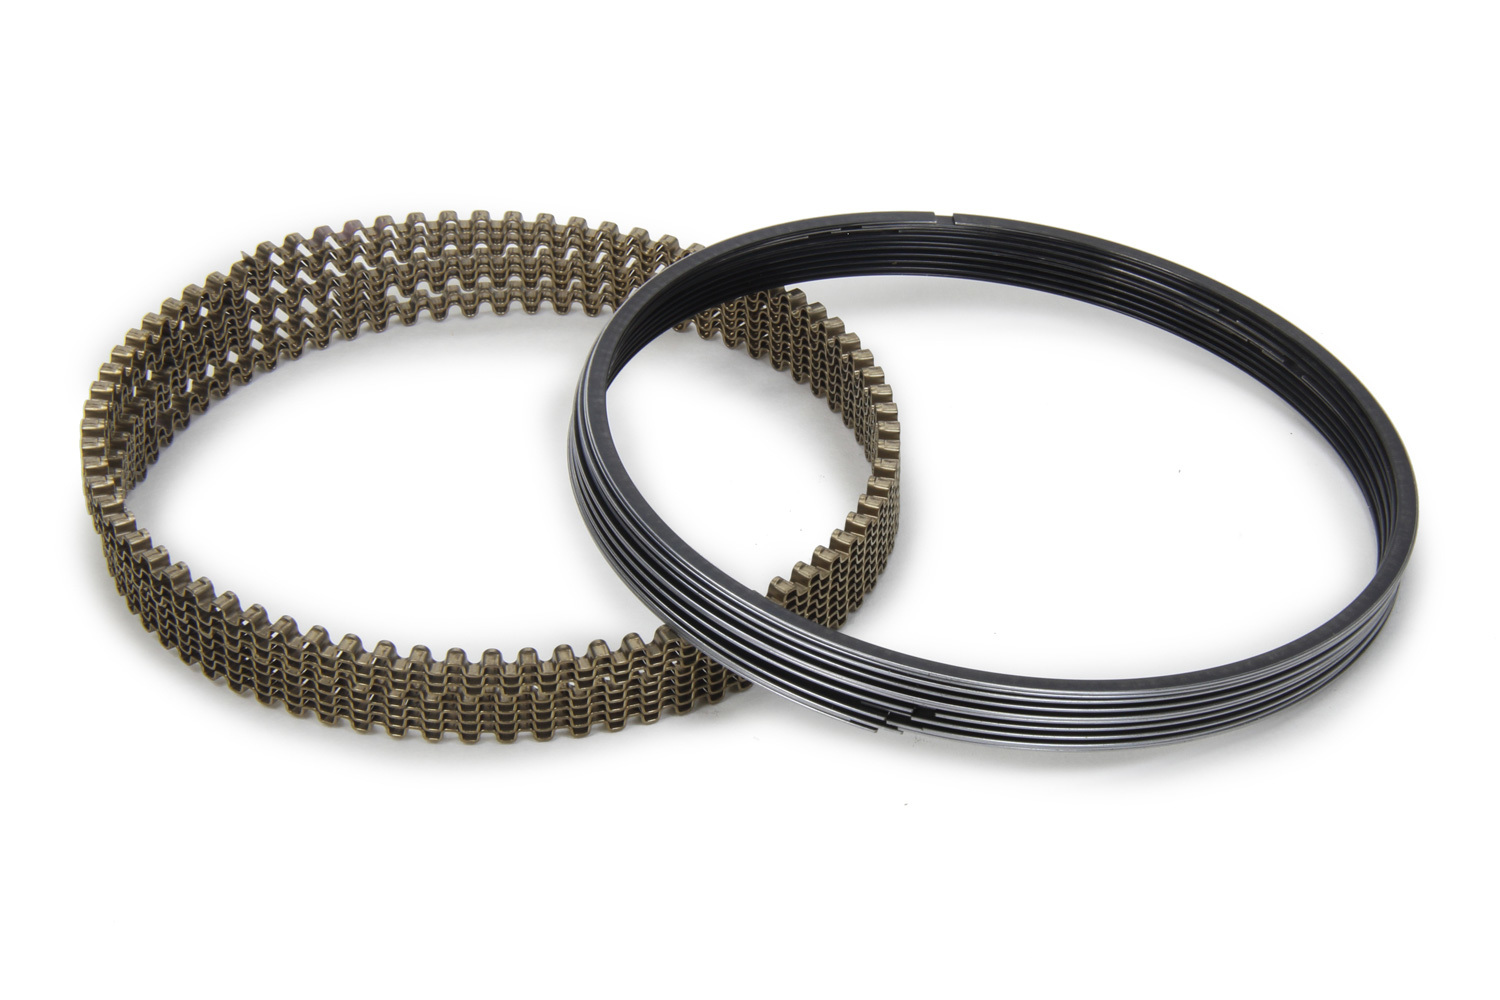 Michigan 77 3030239 Piston Rings, 4.170 in Bore, 0.154 in x 0.154 in x 3.0 mm Thick, Low Tension, Steel, Chrome, Kit